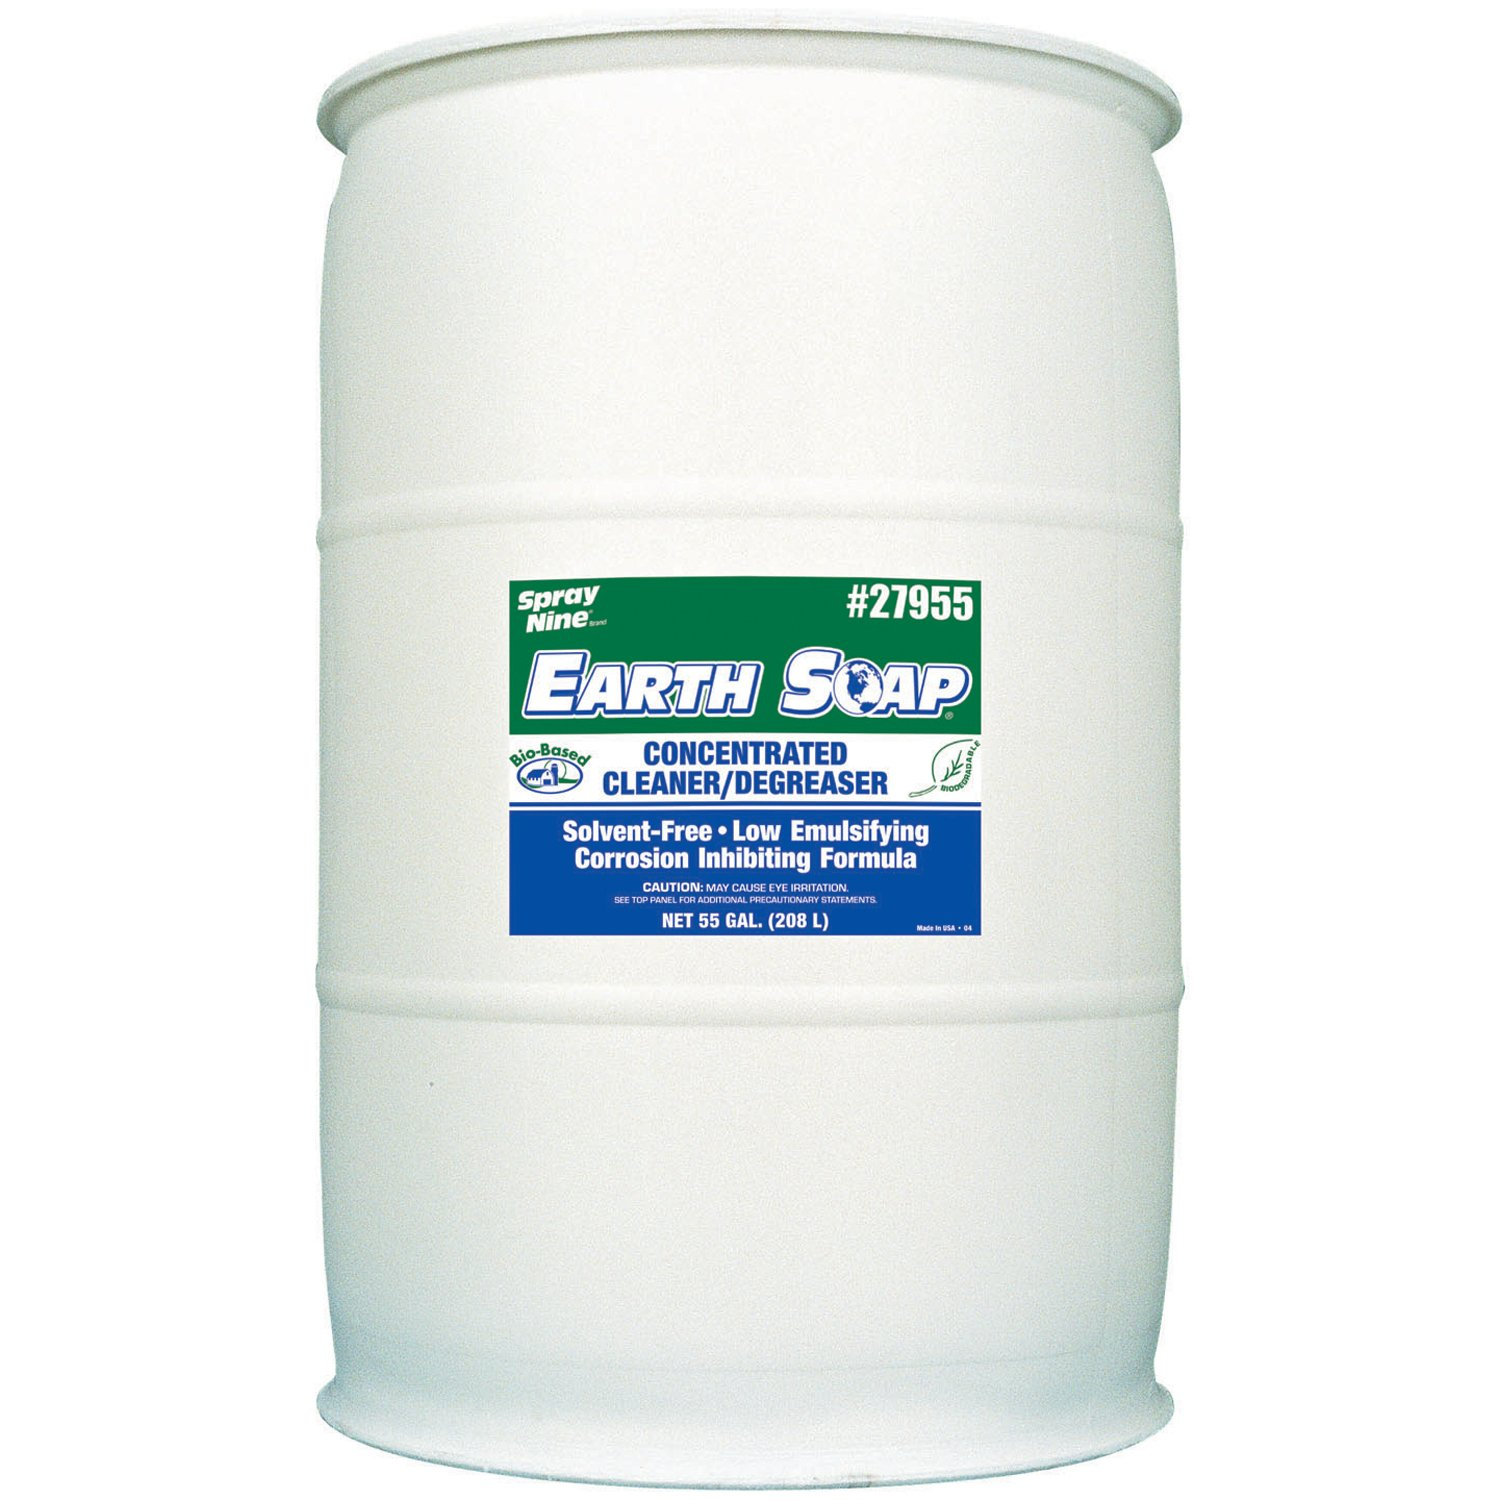 Spray Nine 27955 Earth Soap Concentrated Cleaner/Degreaser - 55 Gallon